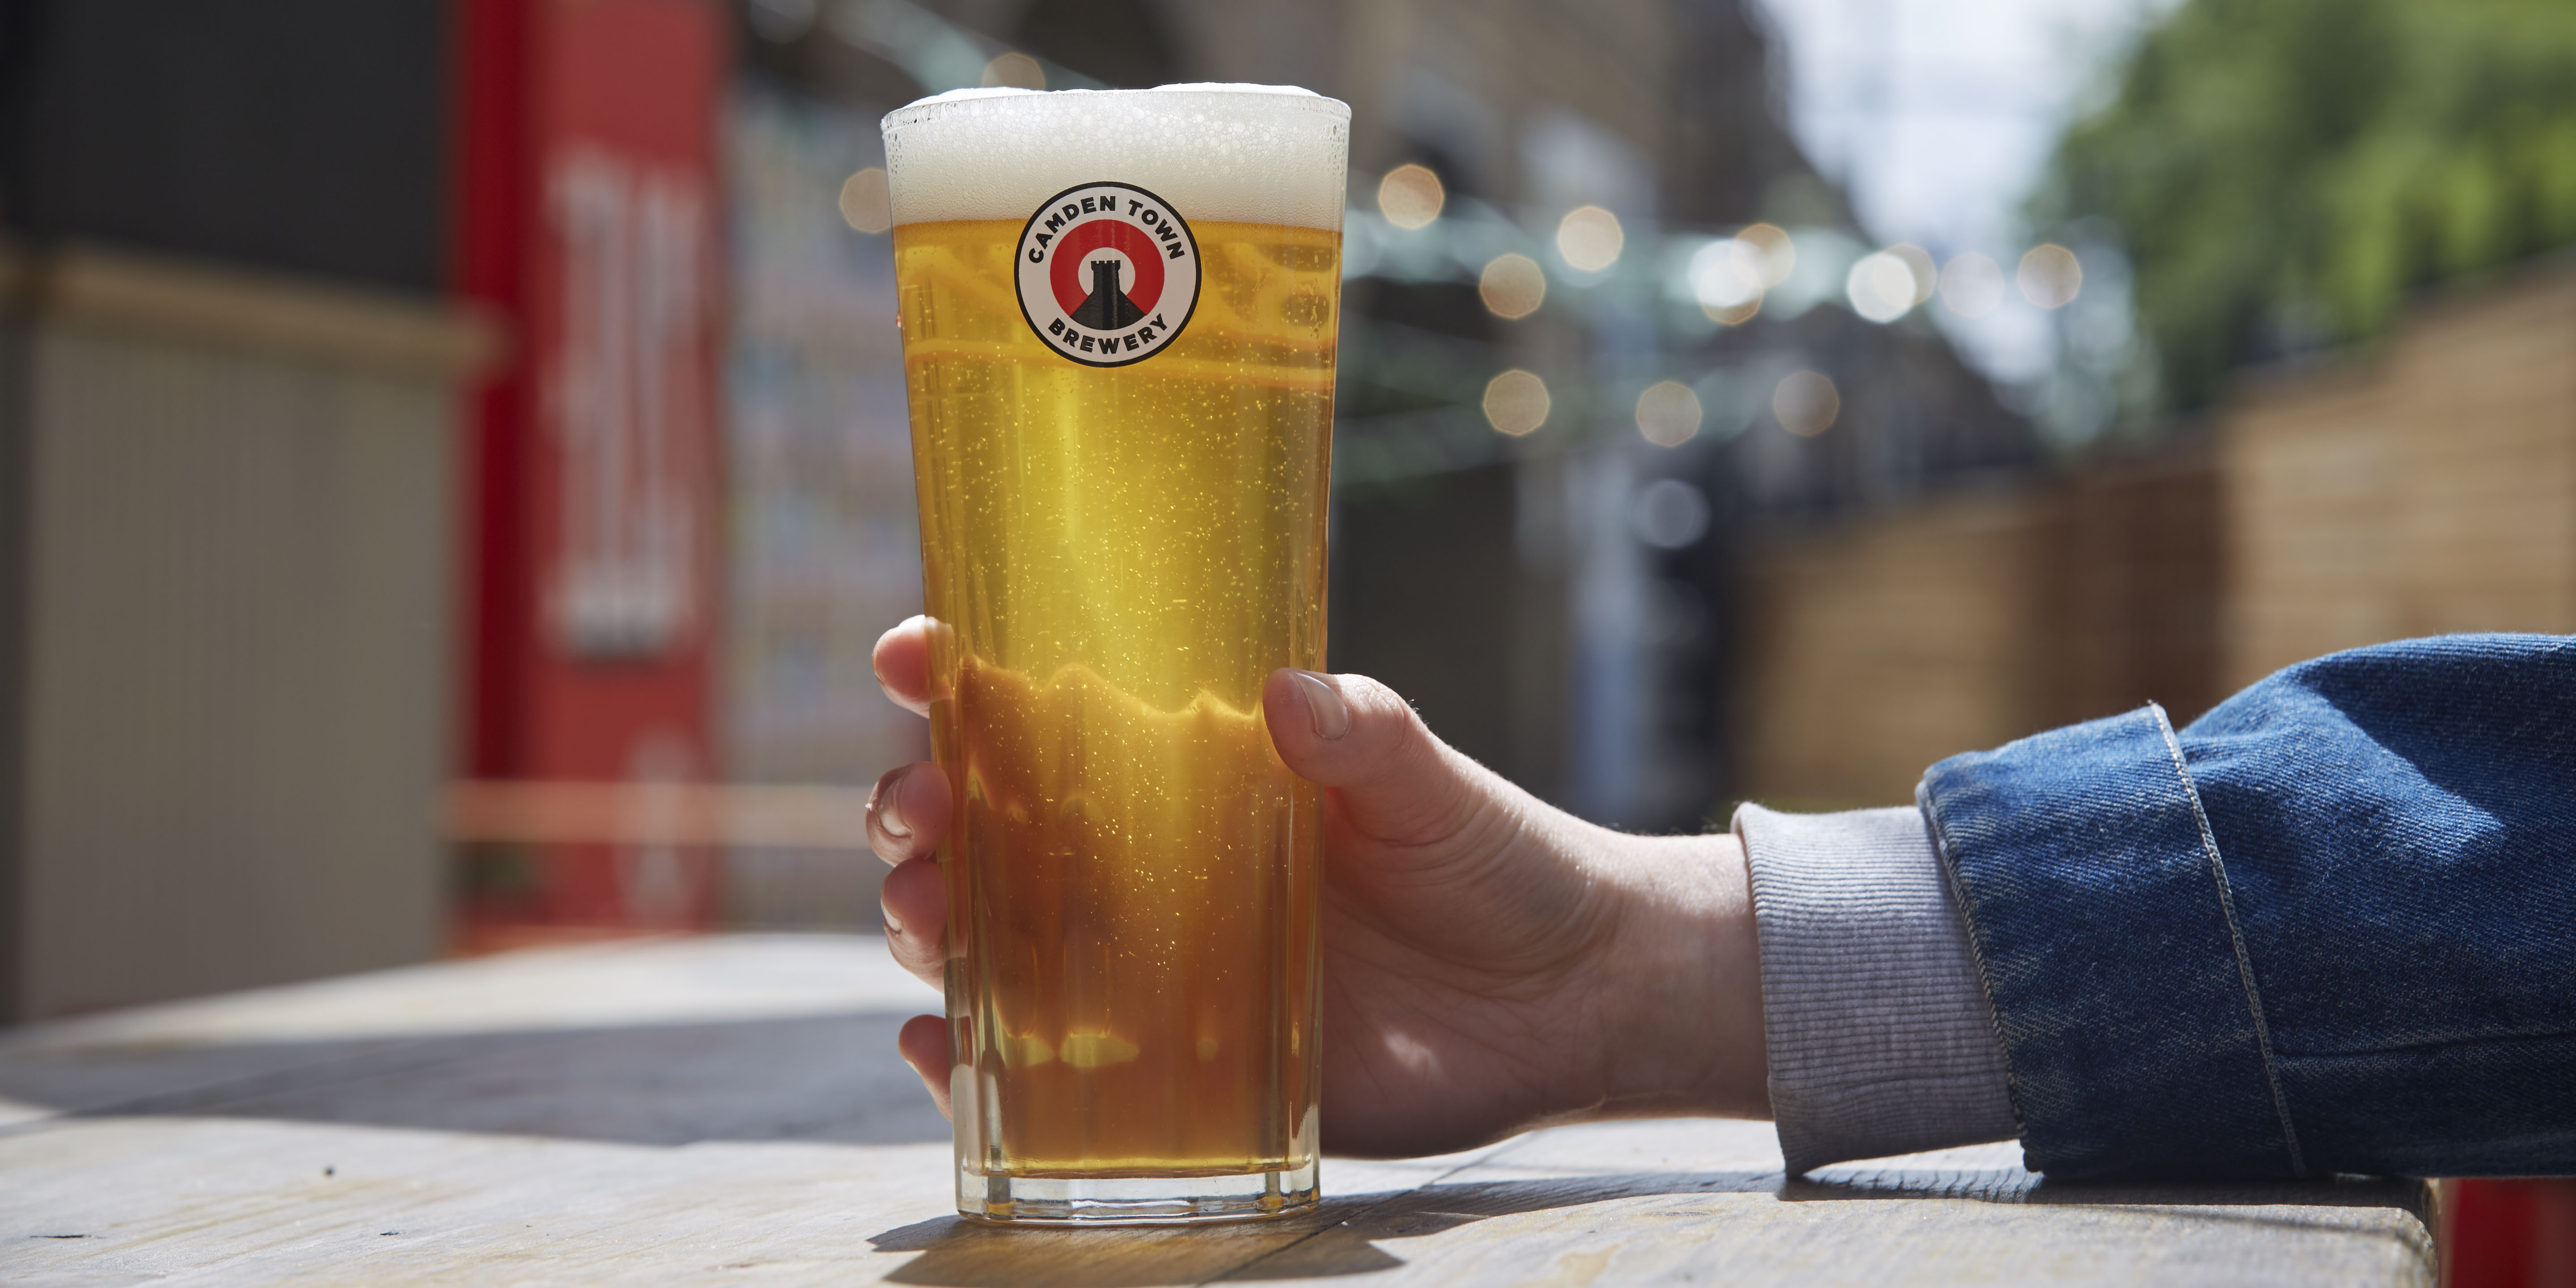 Sir Kenneth Grange's new glass, the Kenneth. Image courtesy of Camden Town Brewery